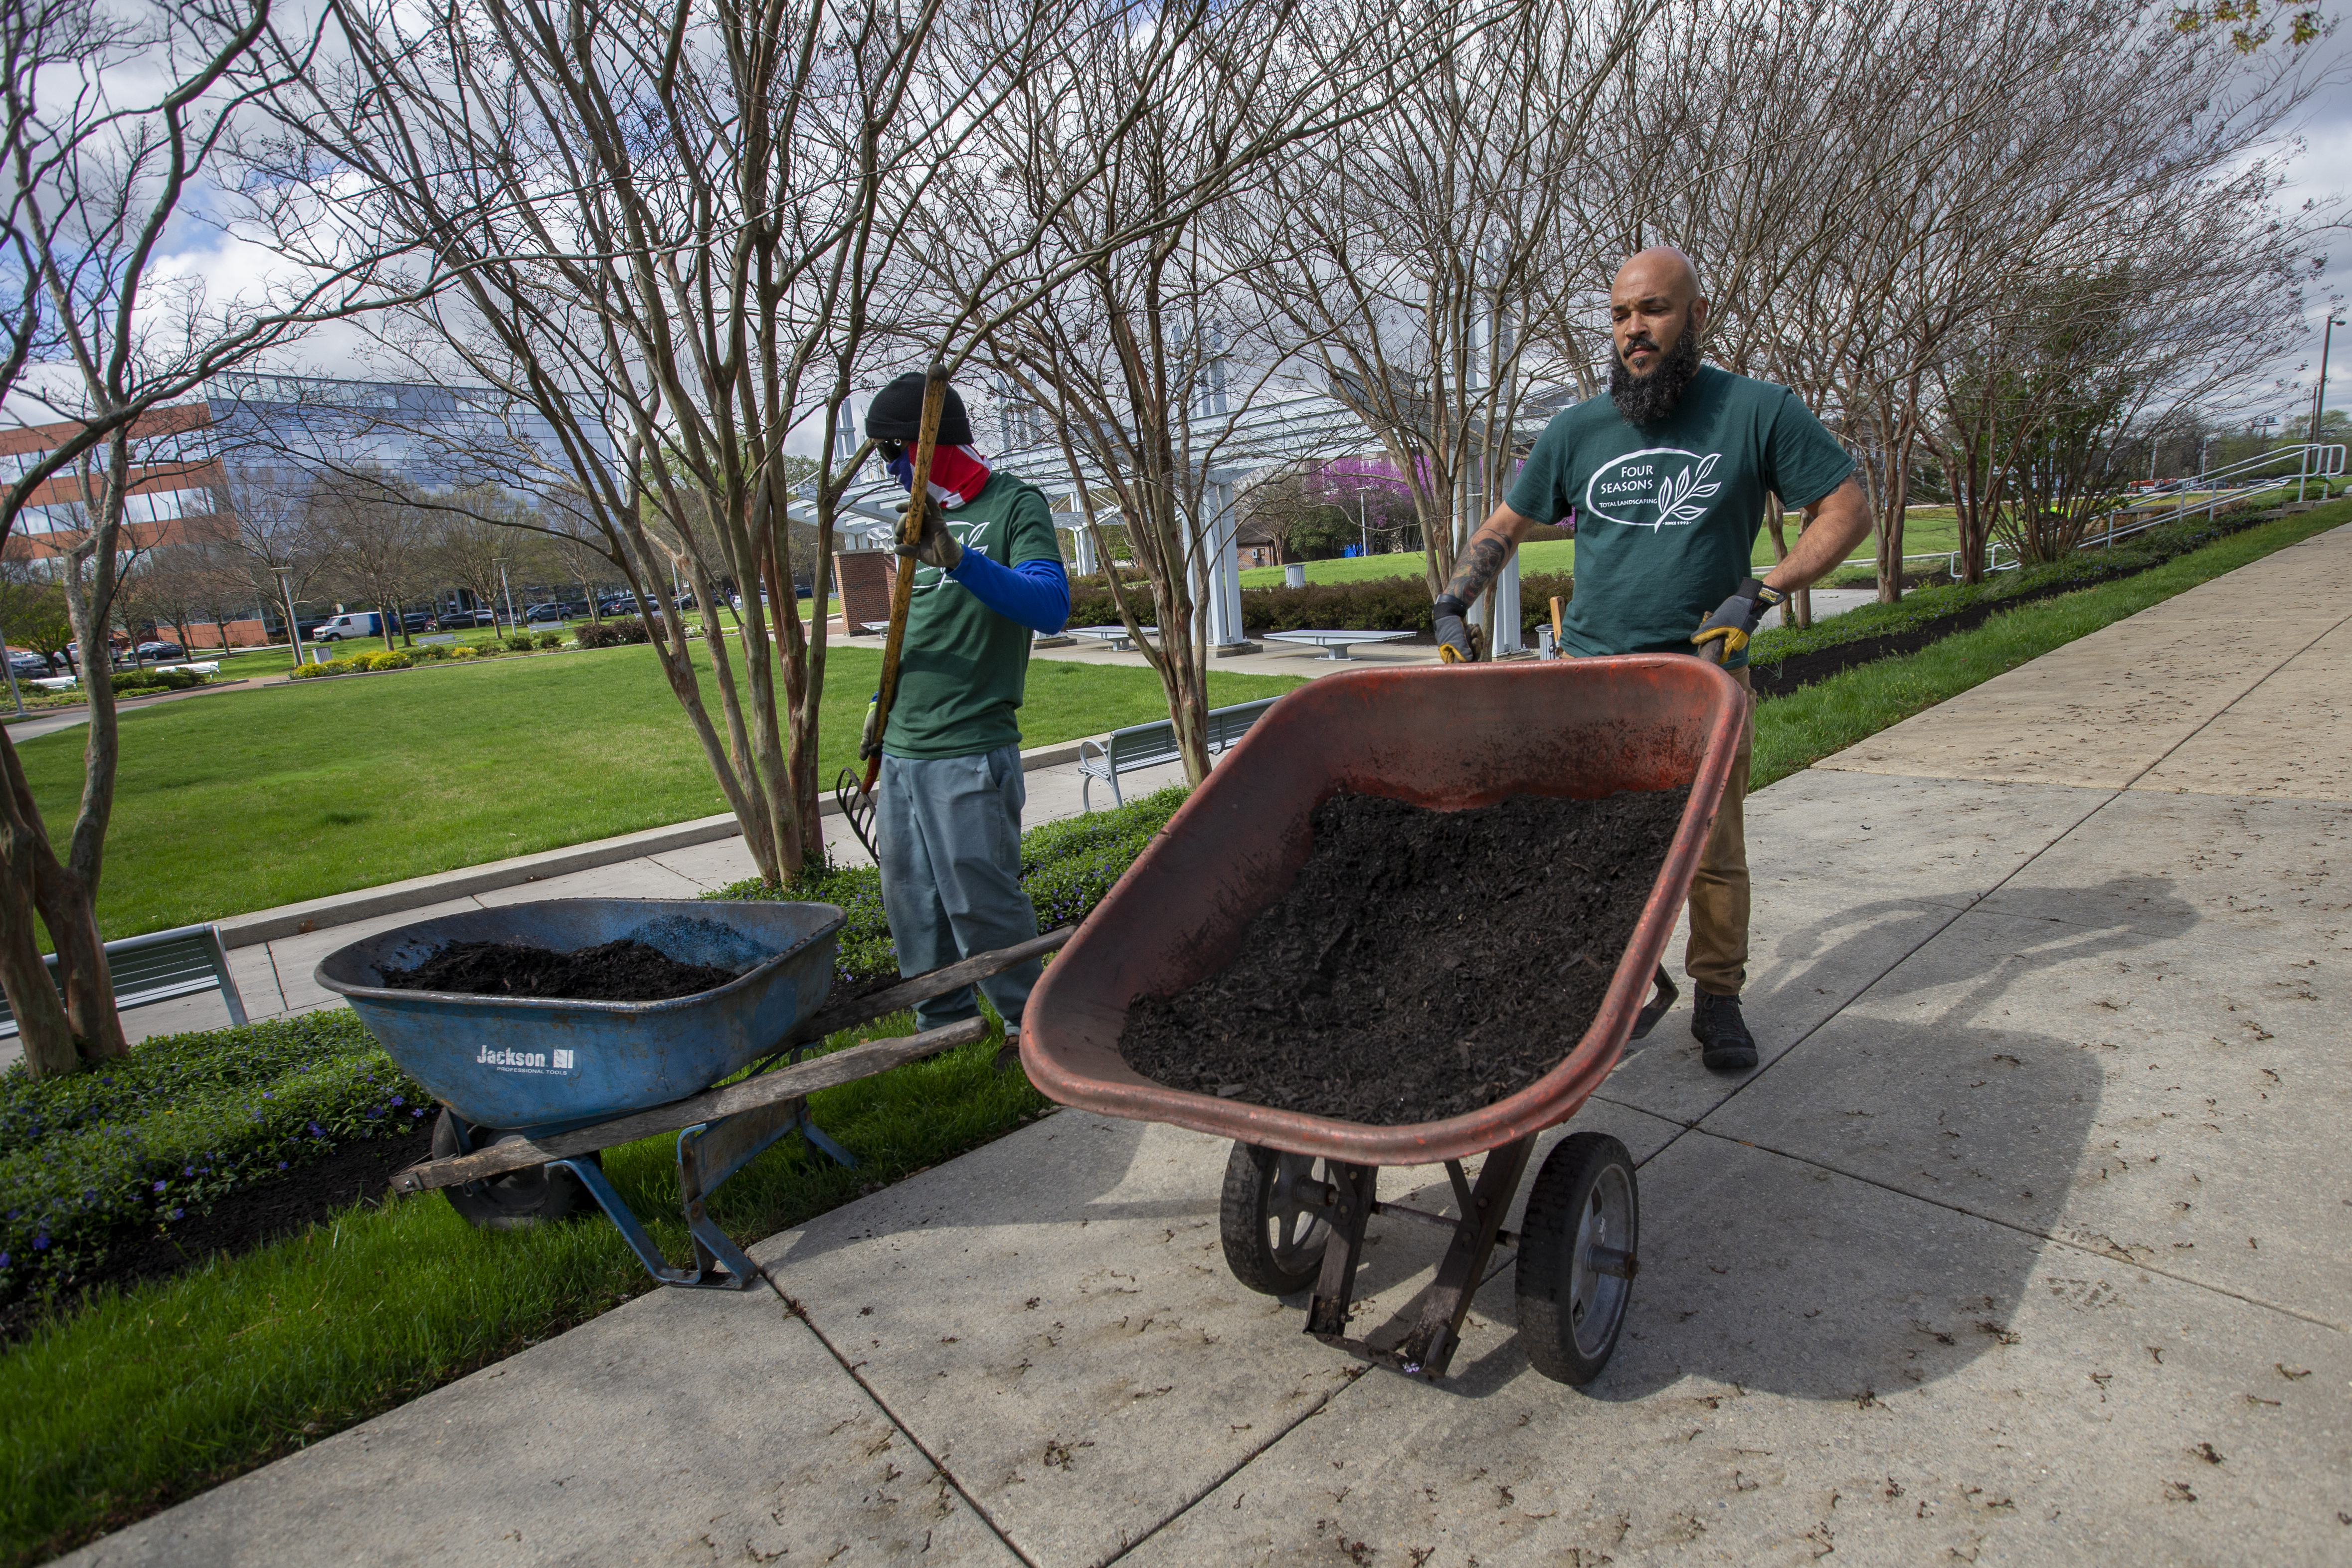 Cameron Corbett hauls a wheelbarrow of mulch on the job with Four Seasons Total Landscaping at the Navy Yard. In background is fellow Four Seasons worker William Hatch.